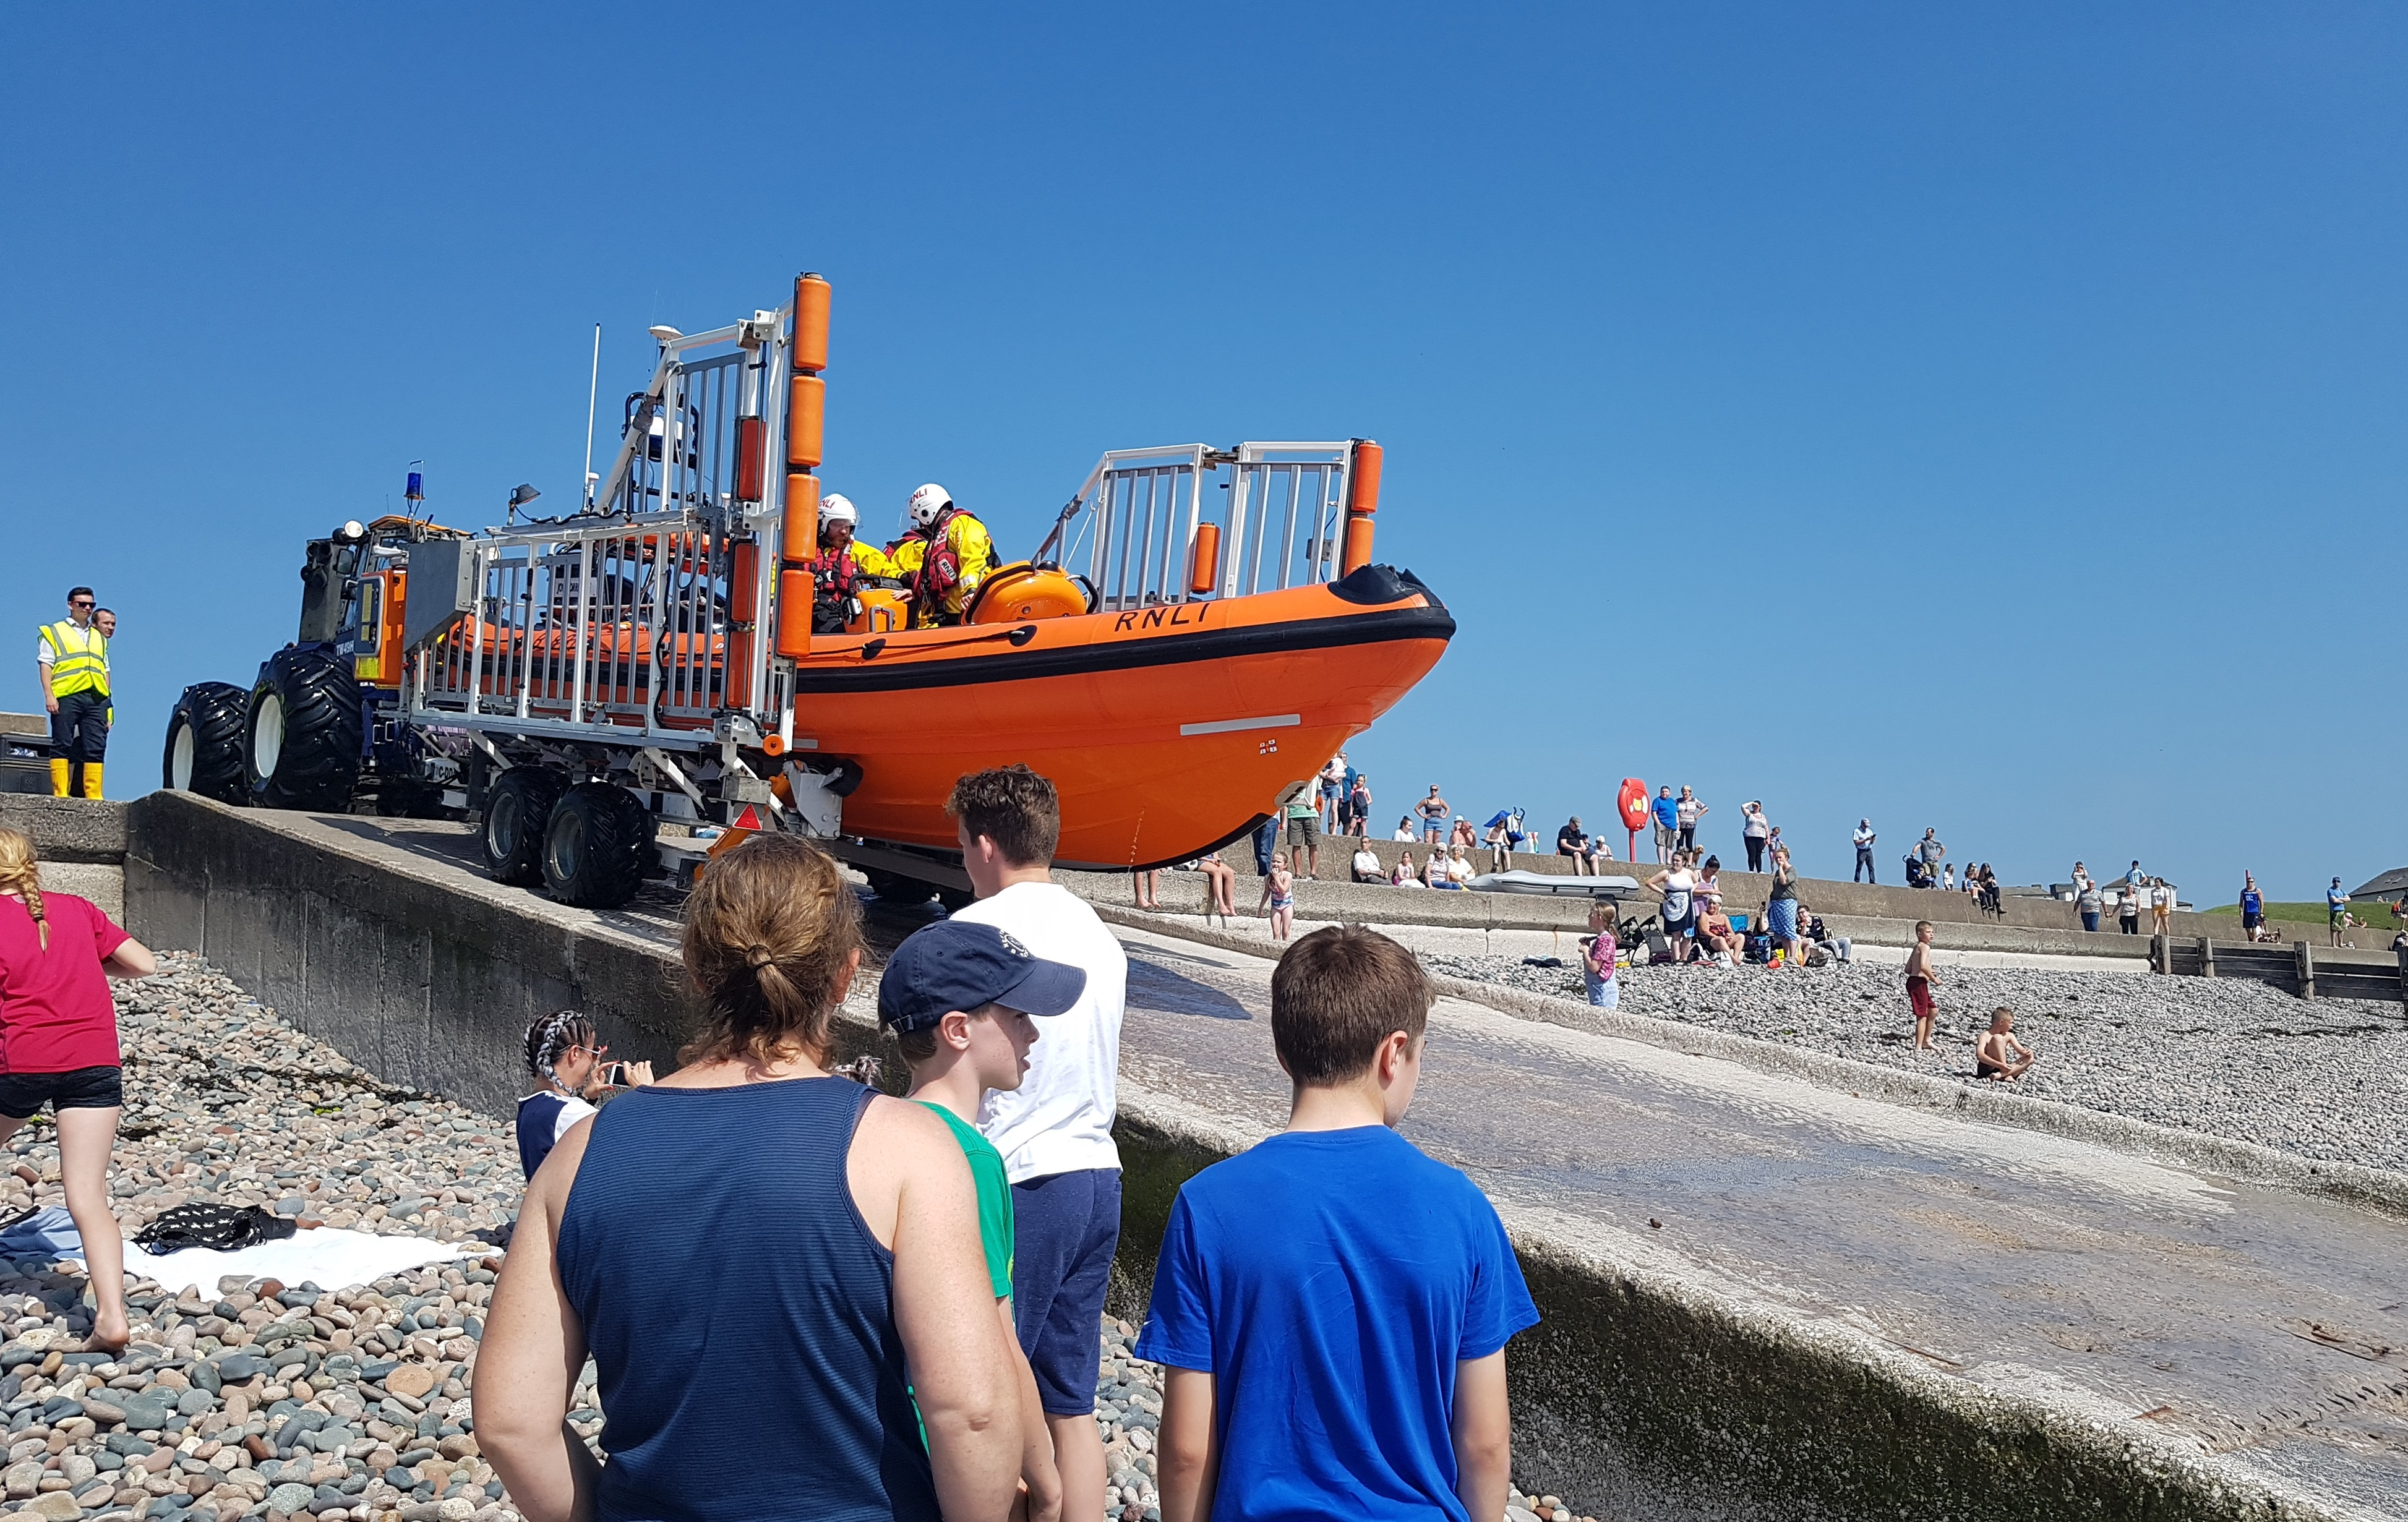 Returning back to the lifeboat station watched by holiday makers and locals enjoyng the sun.